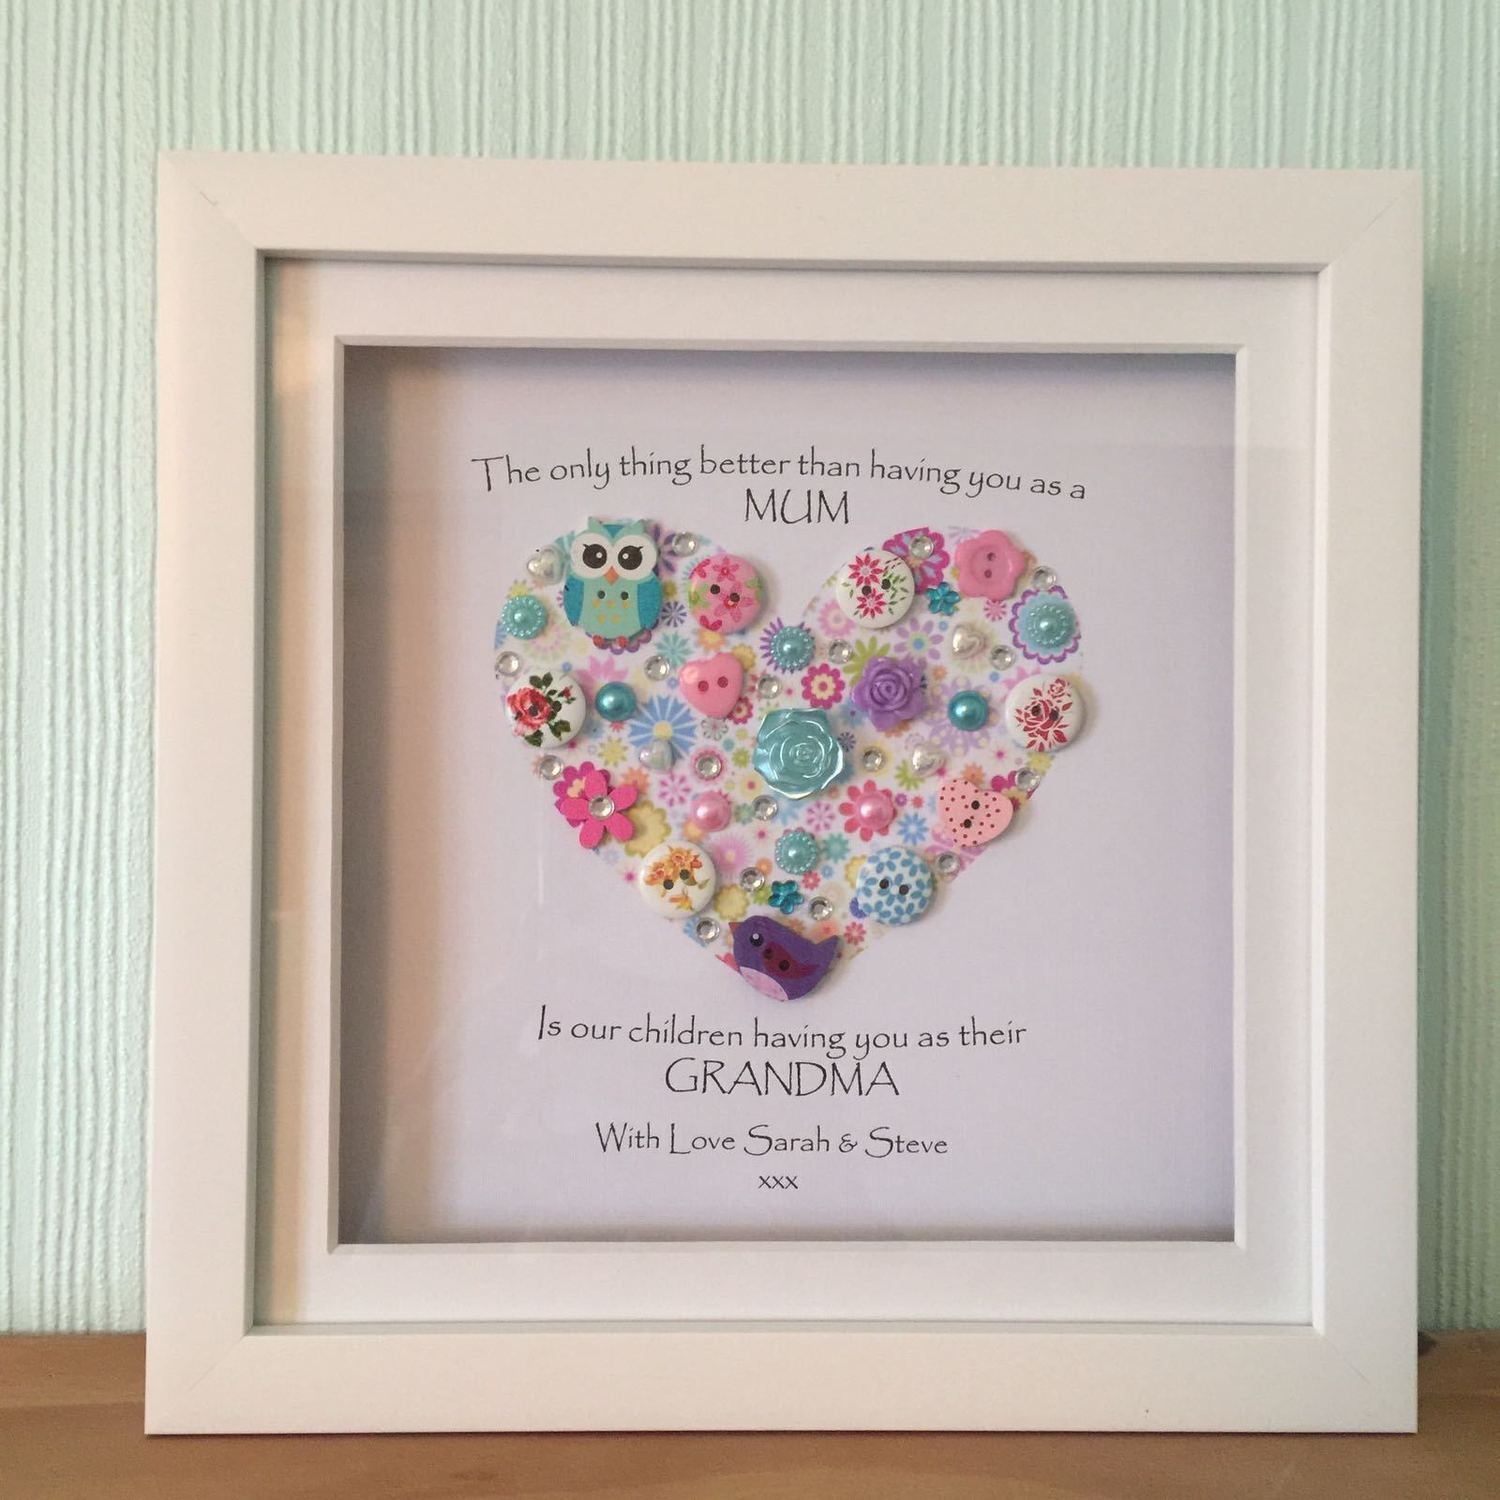 For Grandma Frame Crafty Monkey Personalised Gifts For All